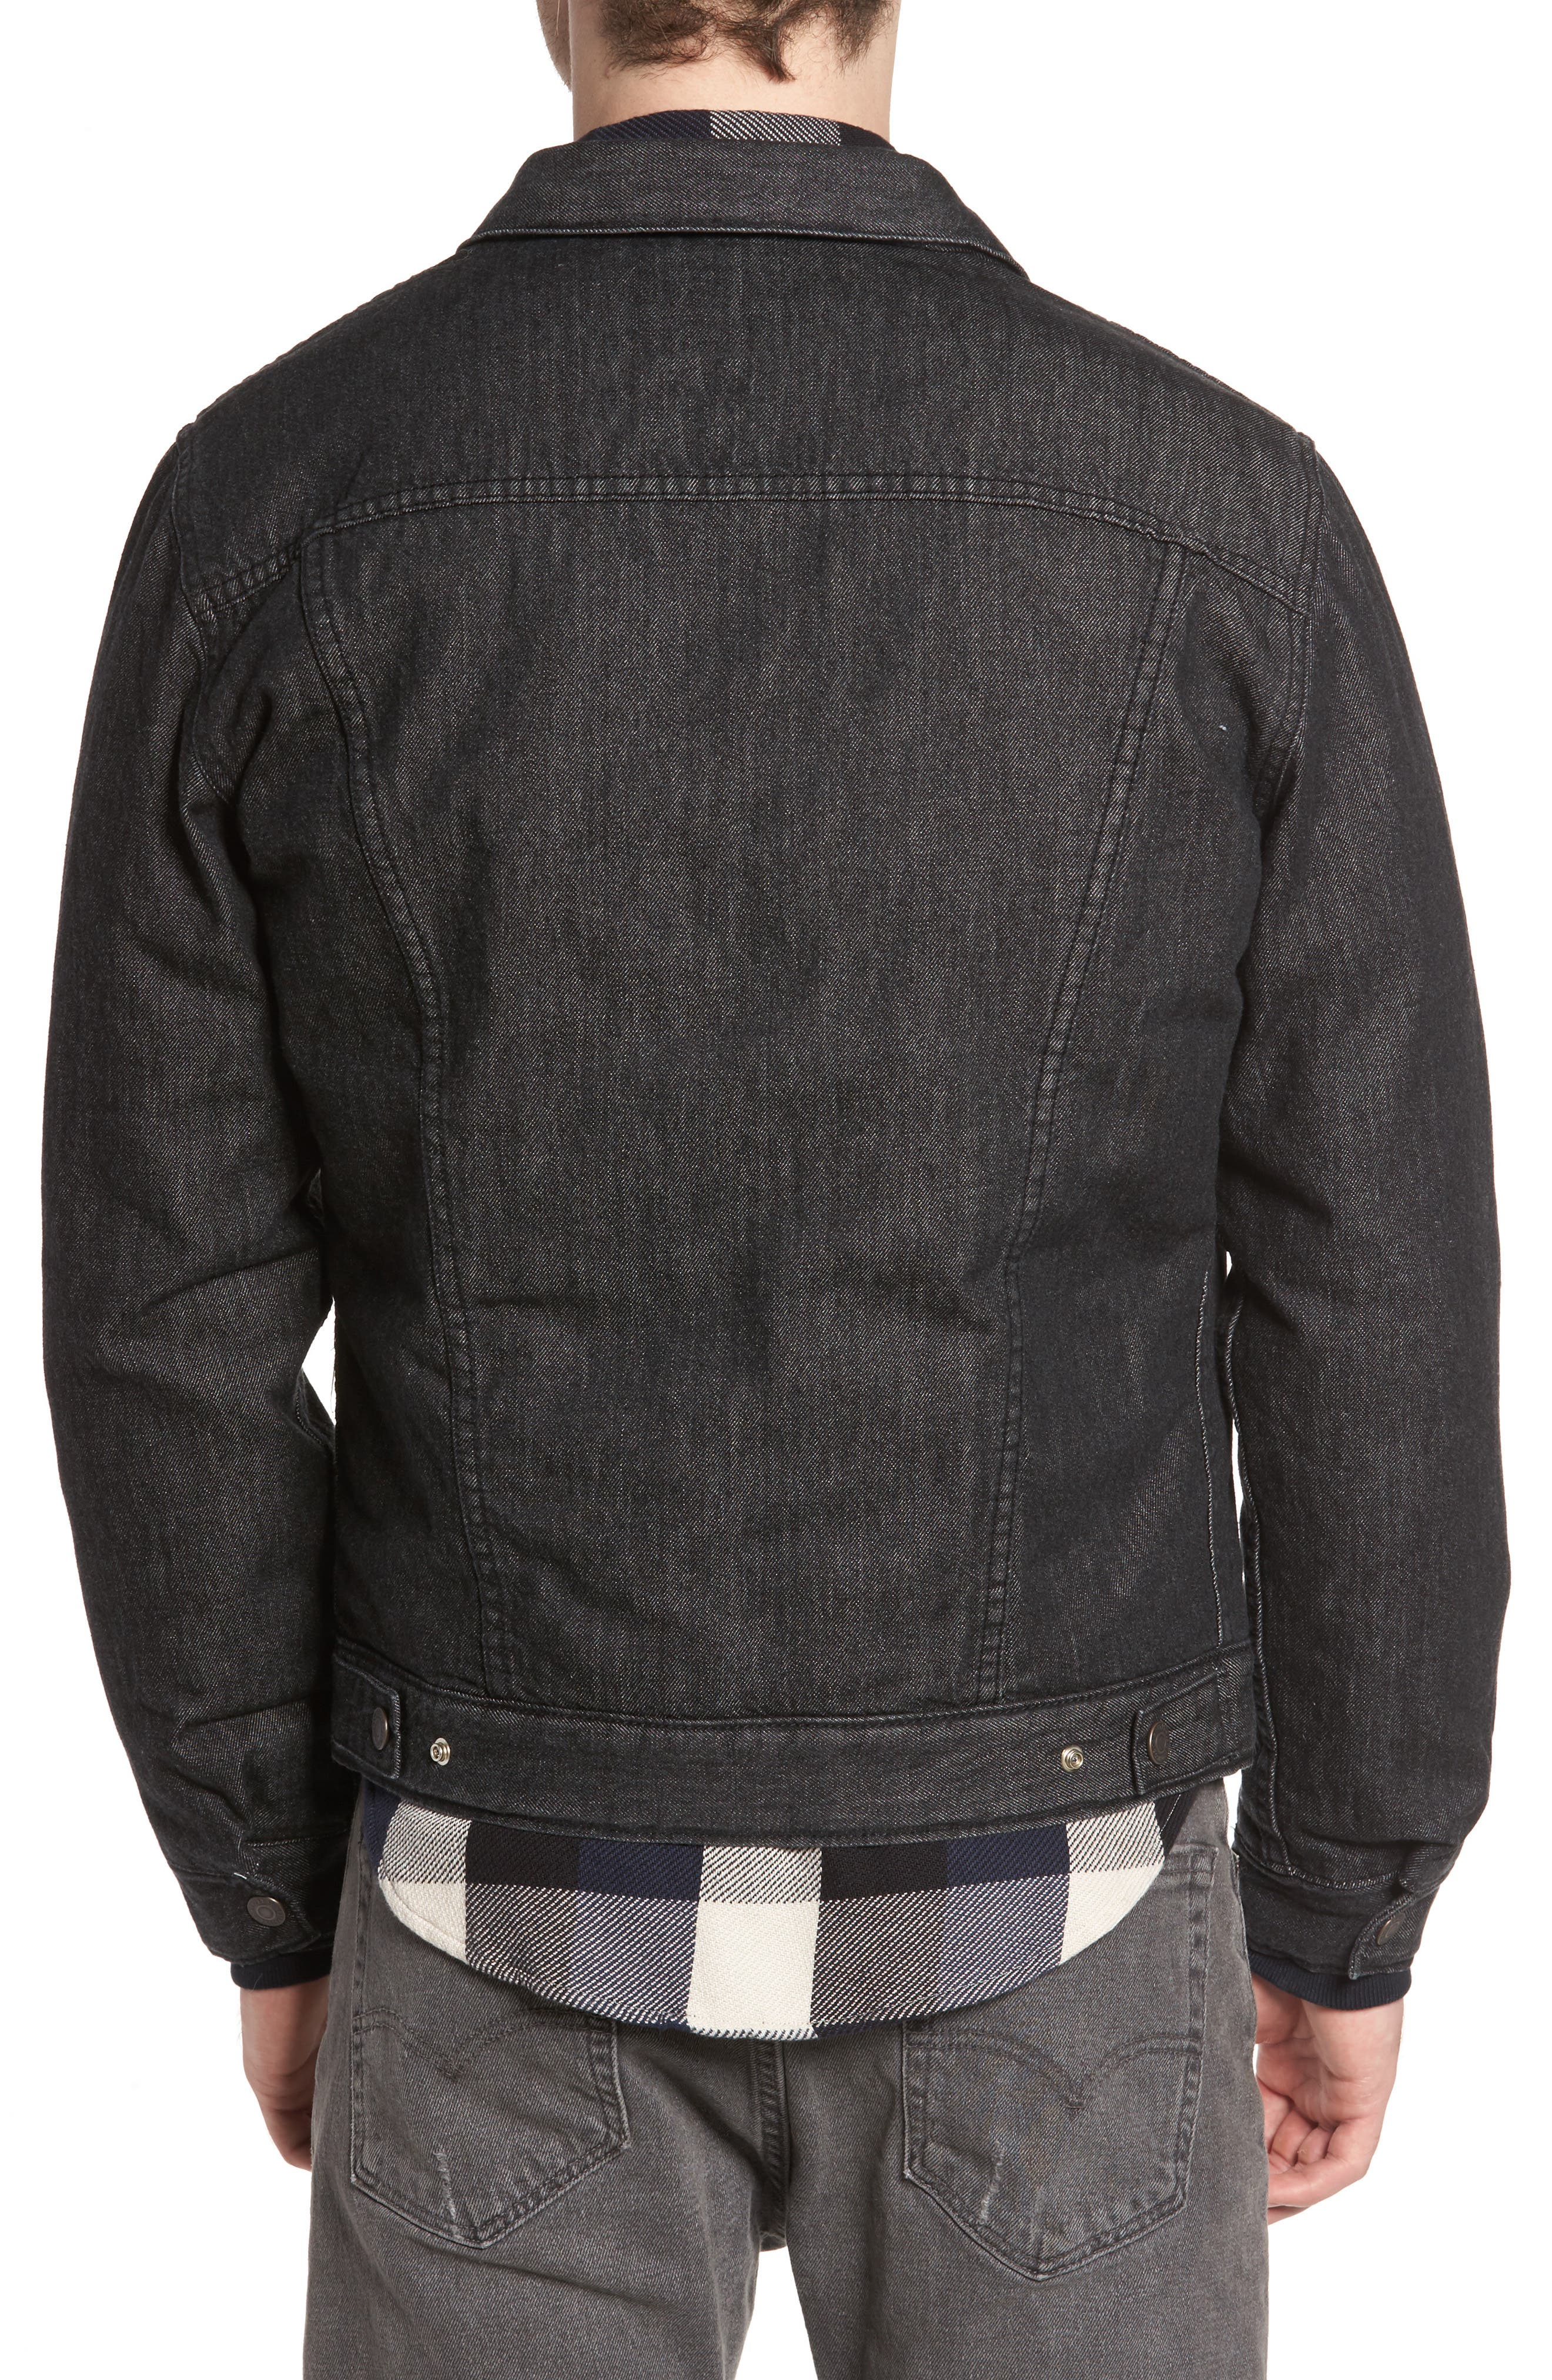 Down Insulated Trucker Jacket,                             Alternate thumbnail 2, color,